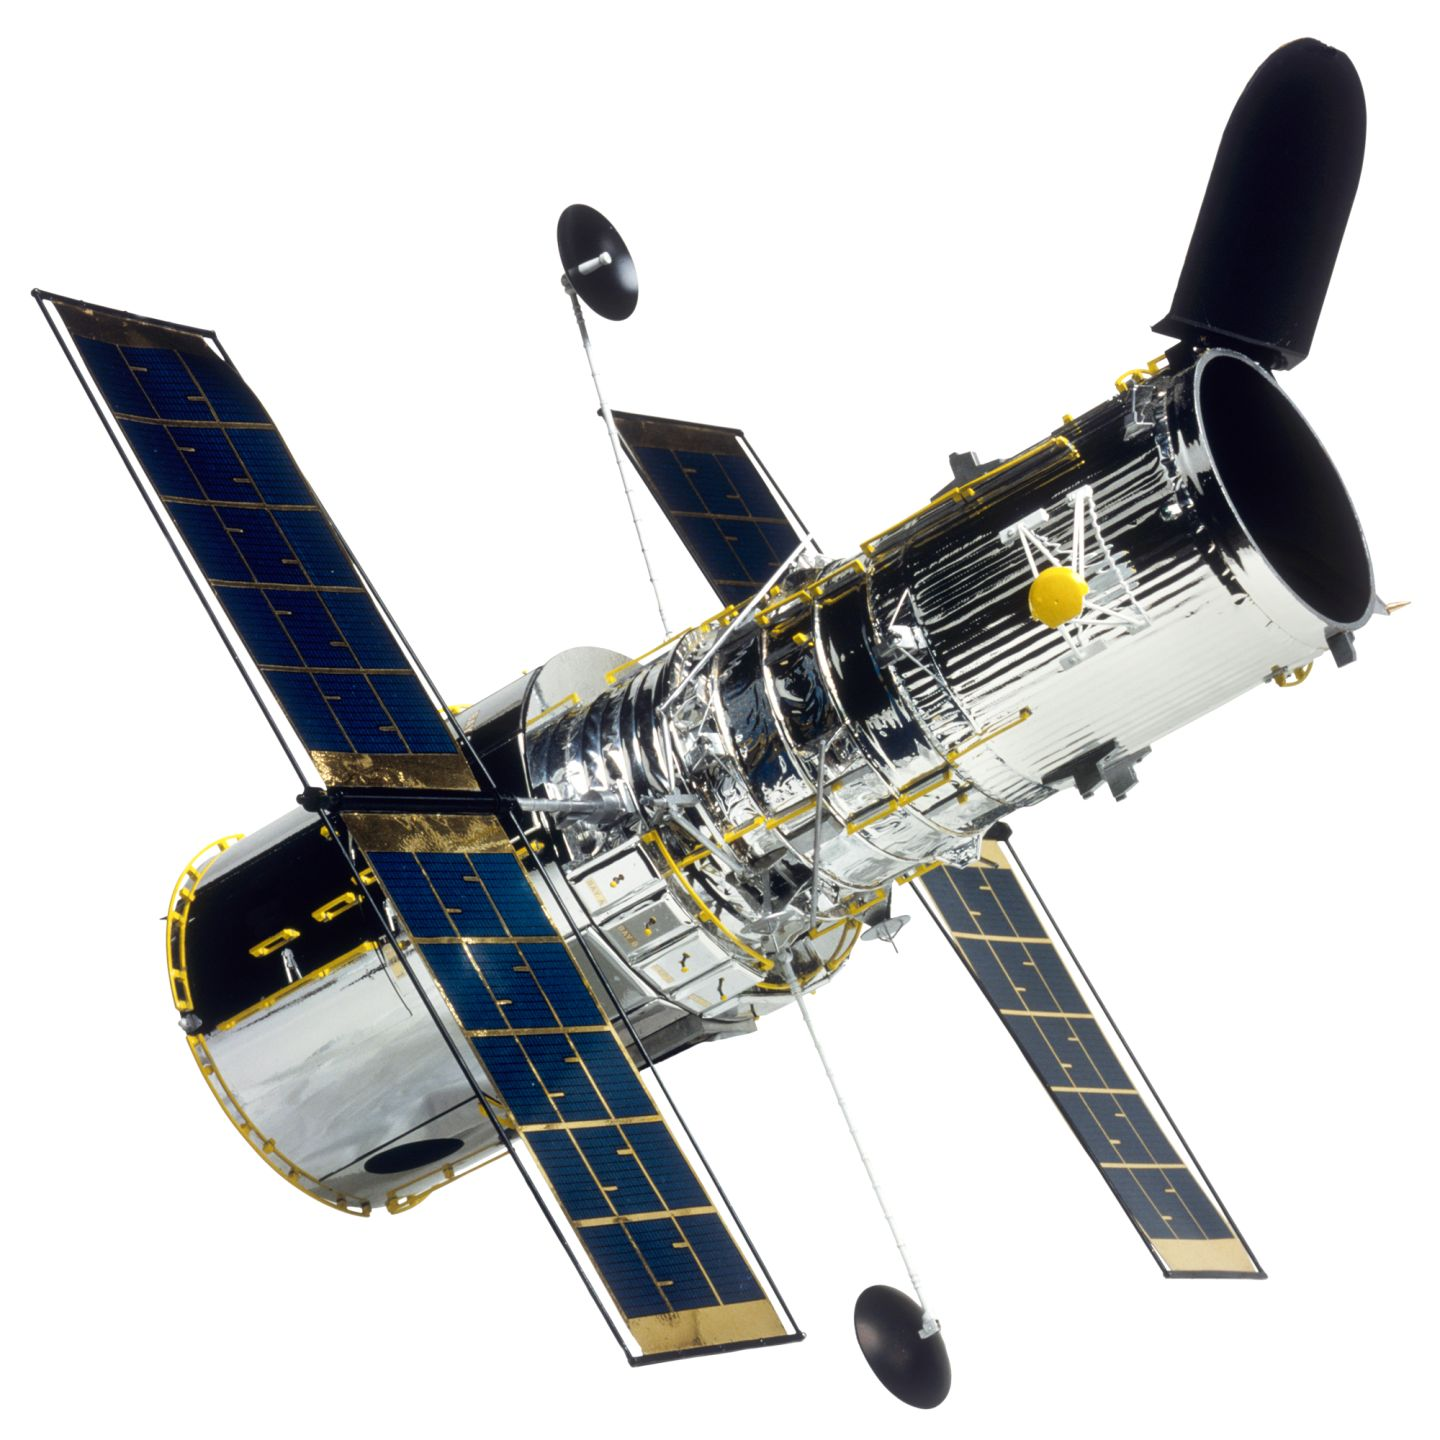 All about the Hubble Space Telescope | DK Find Out!